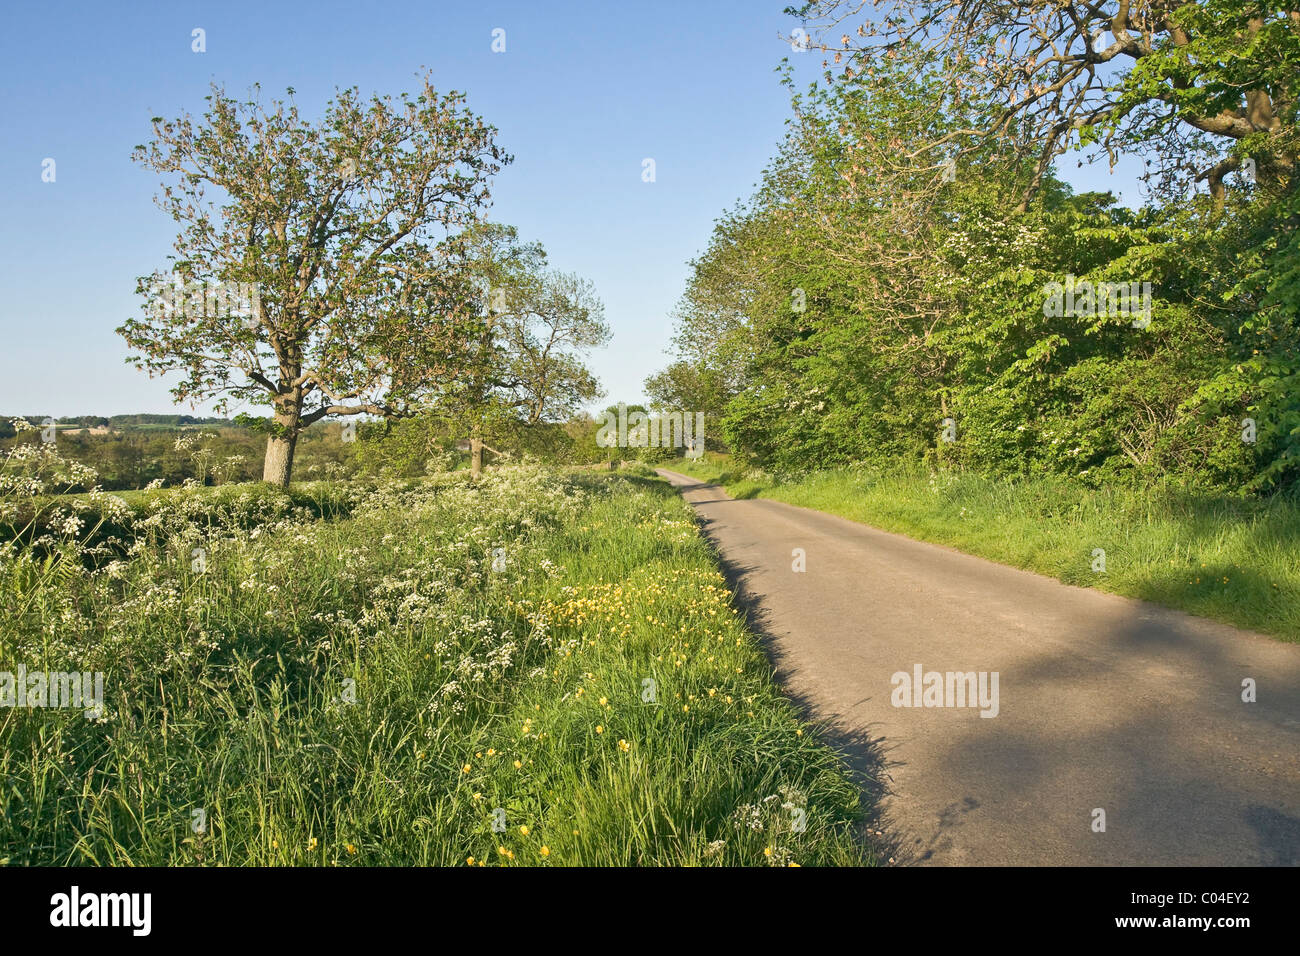 Country road near Leyburn, North Yorkshire. grass verge with cow parsley in flower and a field covered in dandelions. - Stock Image